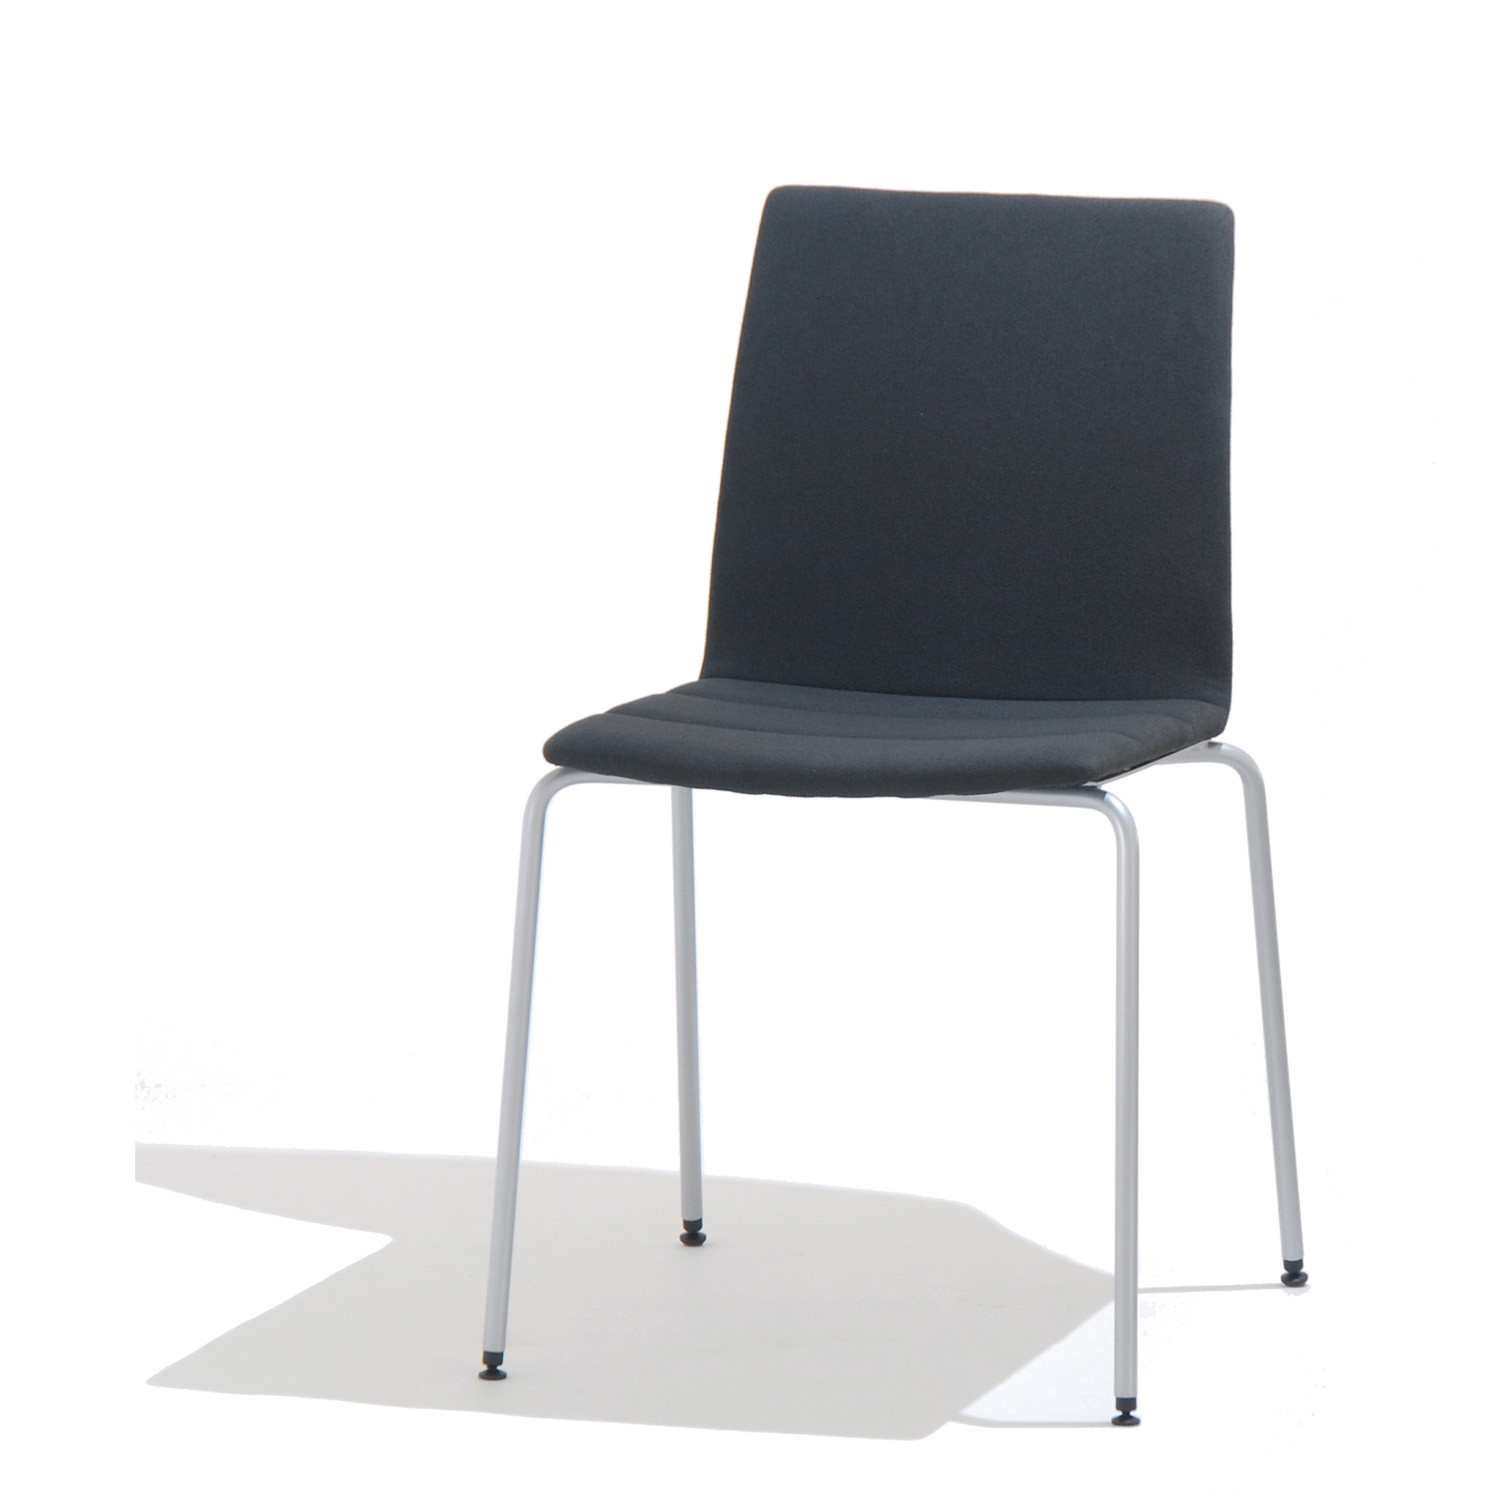 Update_B Cafe Chair